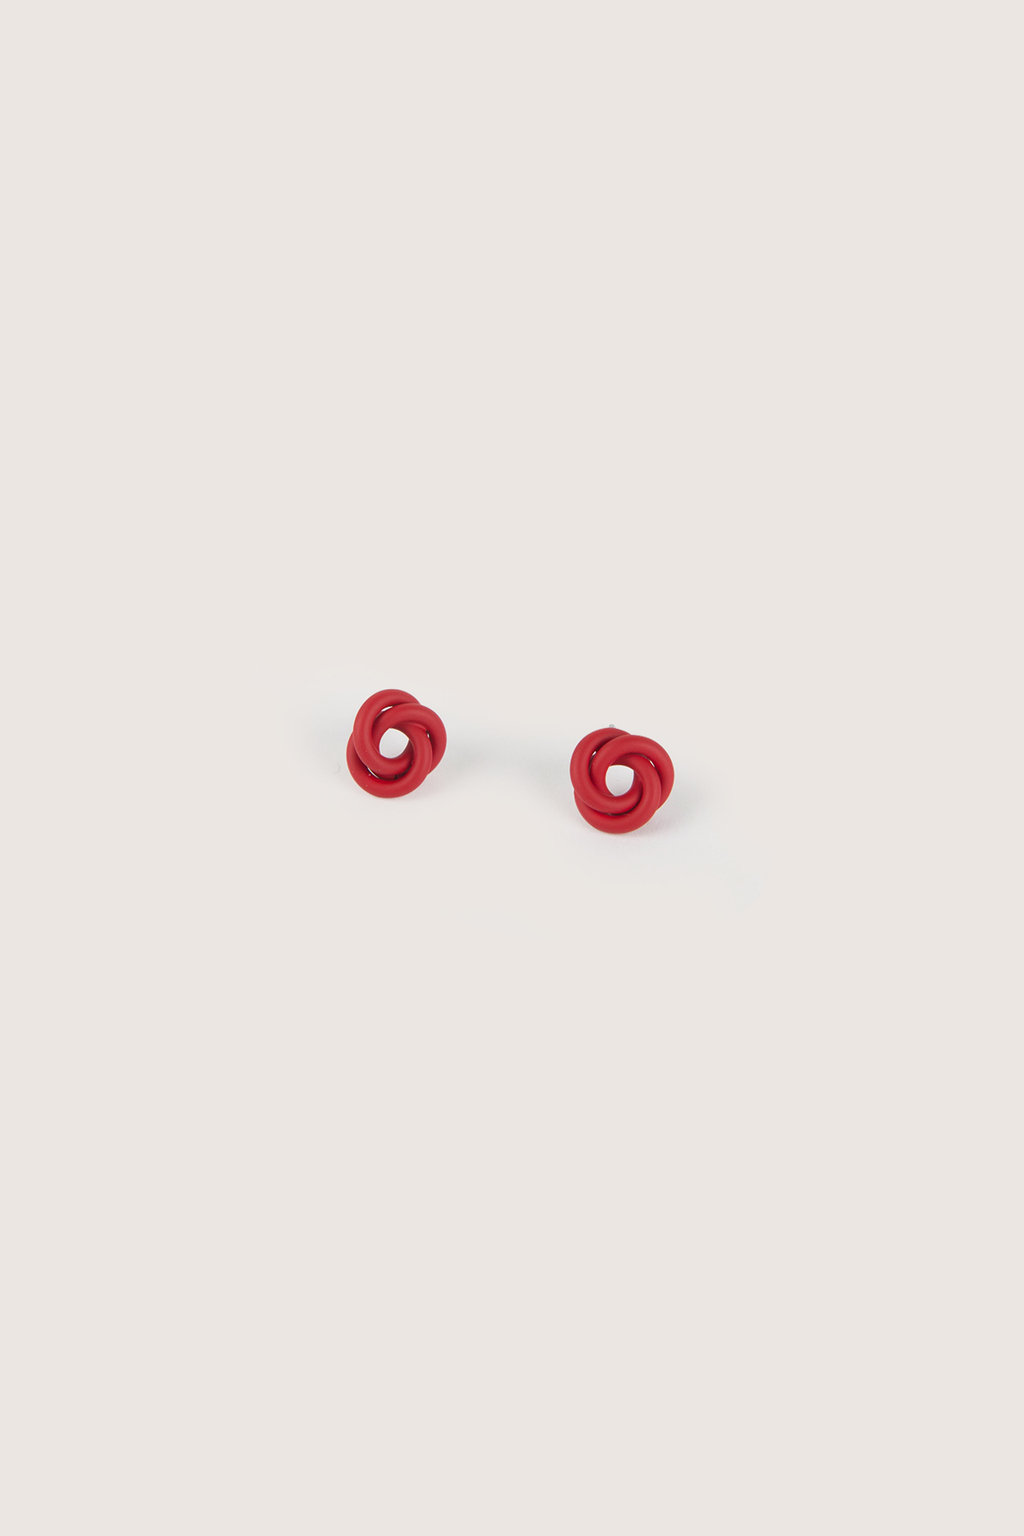 Earring H240 Red 1